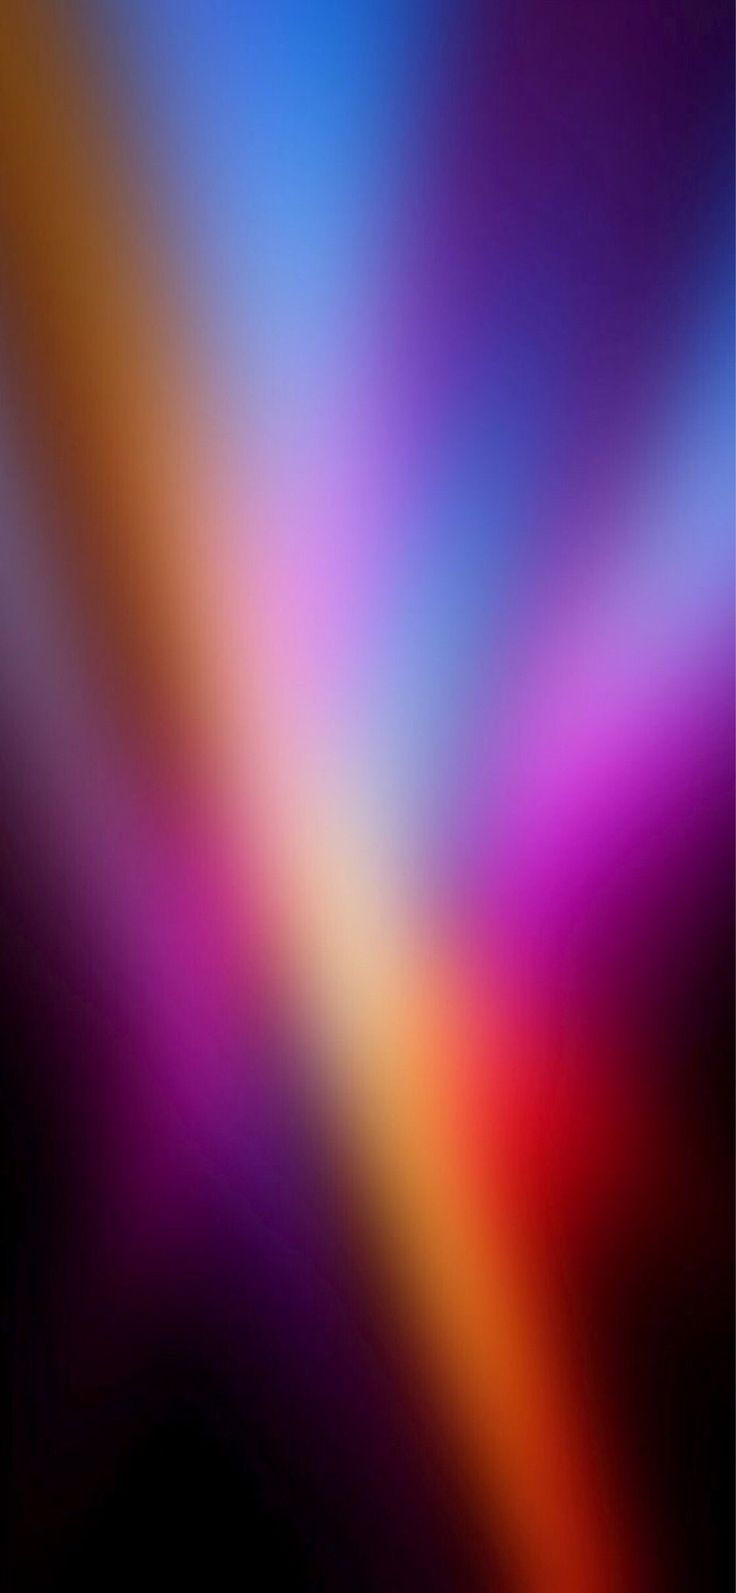 (notitle) | Abstract HD Wallpapers 4